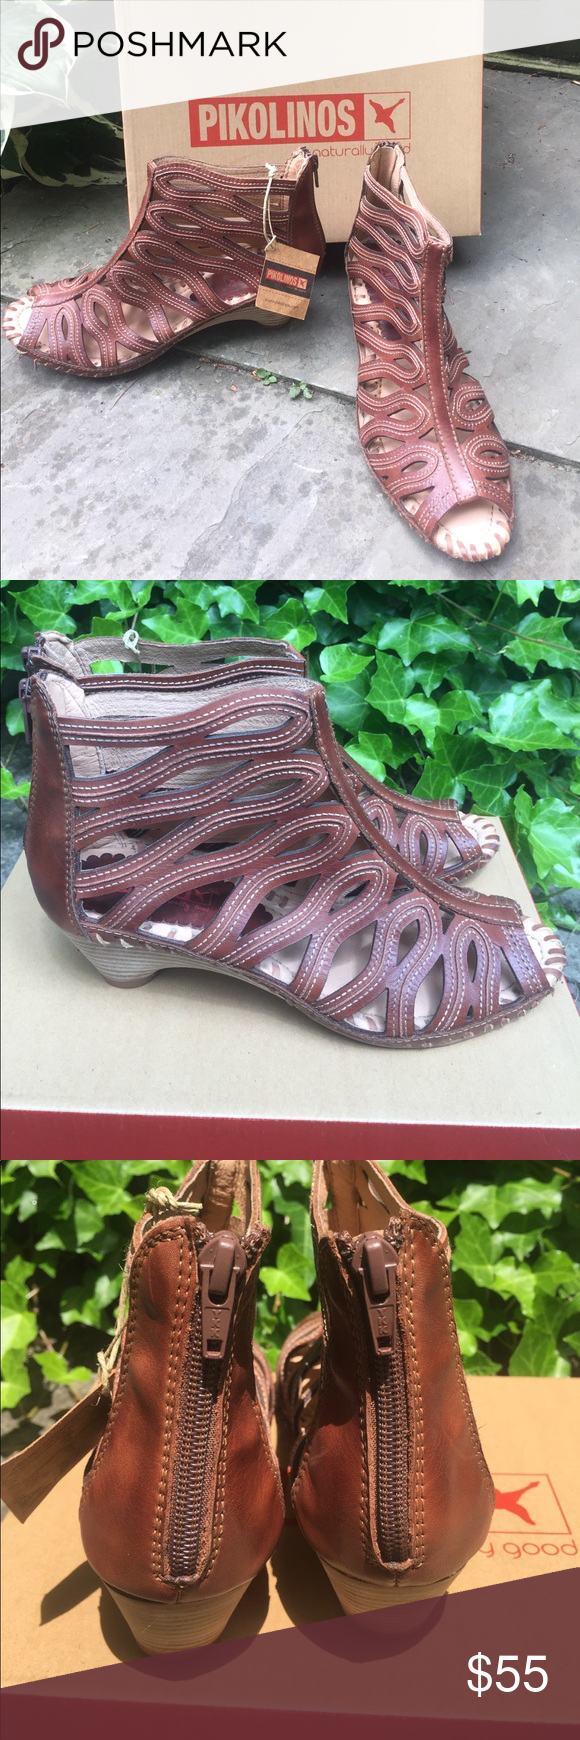 """NIB • PIKOLINOS SANDALS NIB • PIKOLINOS ANKLE HIGH SANDALS • SIZE 39 • BEAUTIFUL DESIGN • HEEL HEIGHT 2"""" • COMES WITH SPONGE • ZIPPERS IN BACK PIKOLINOS Shoes Sandals"""